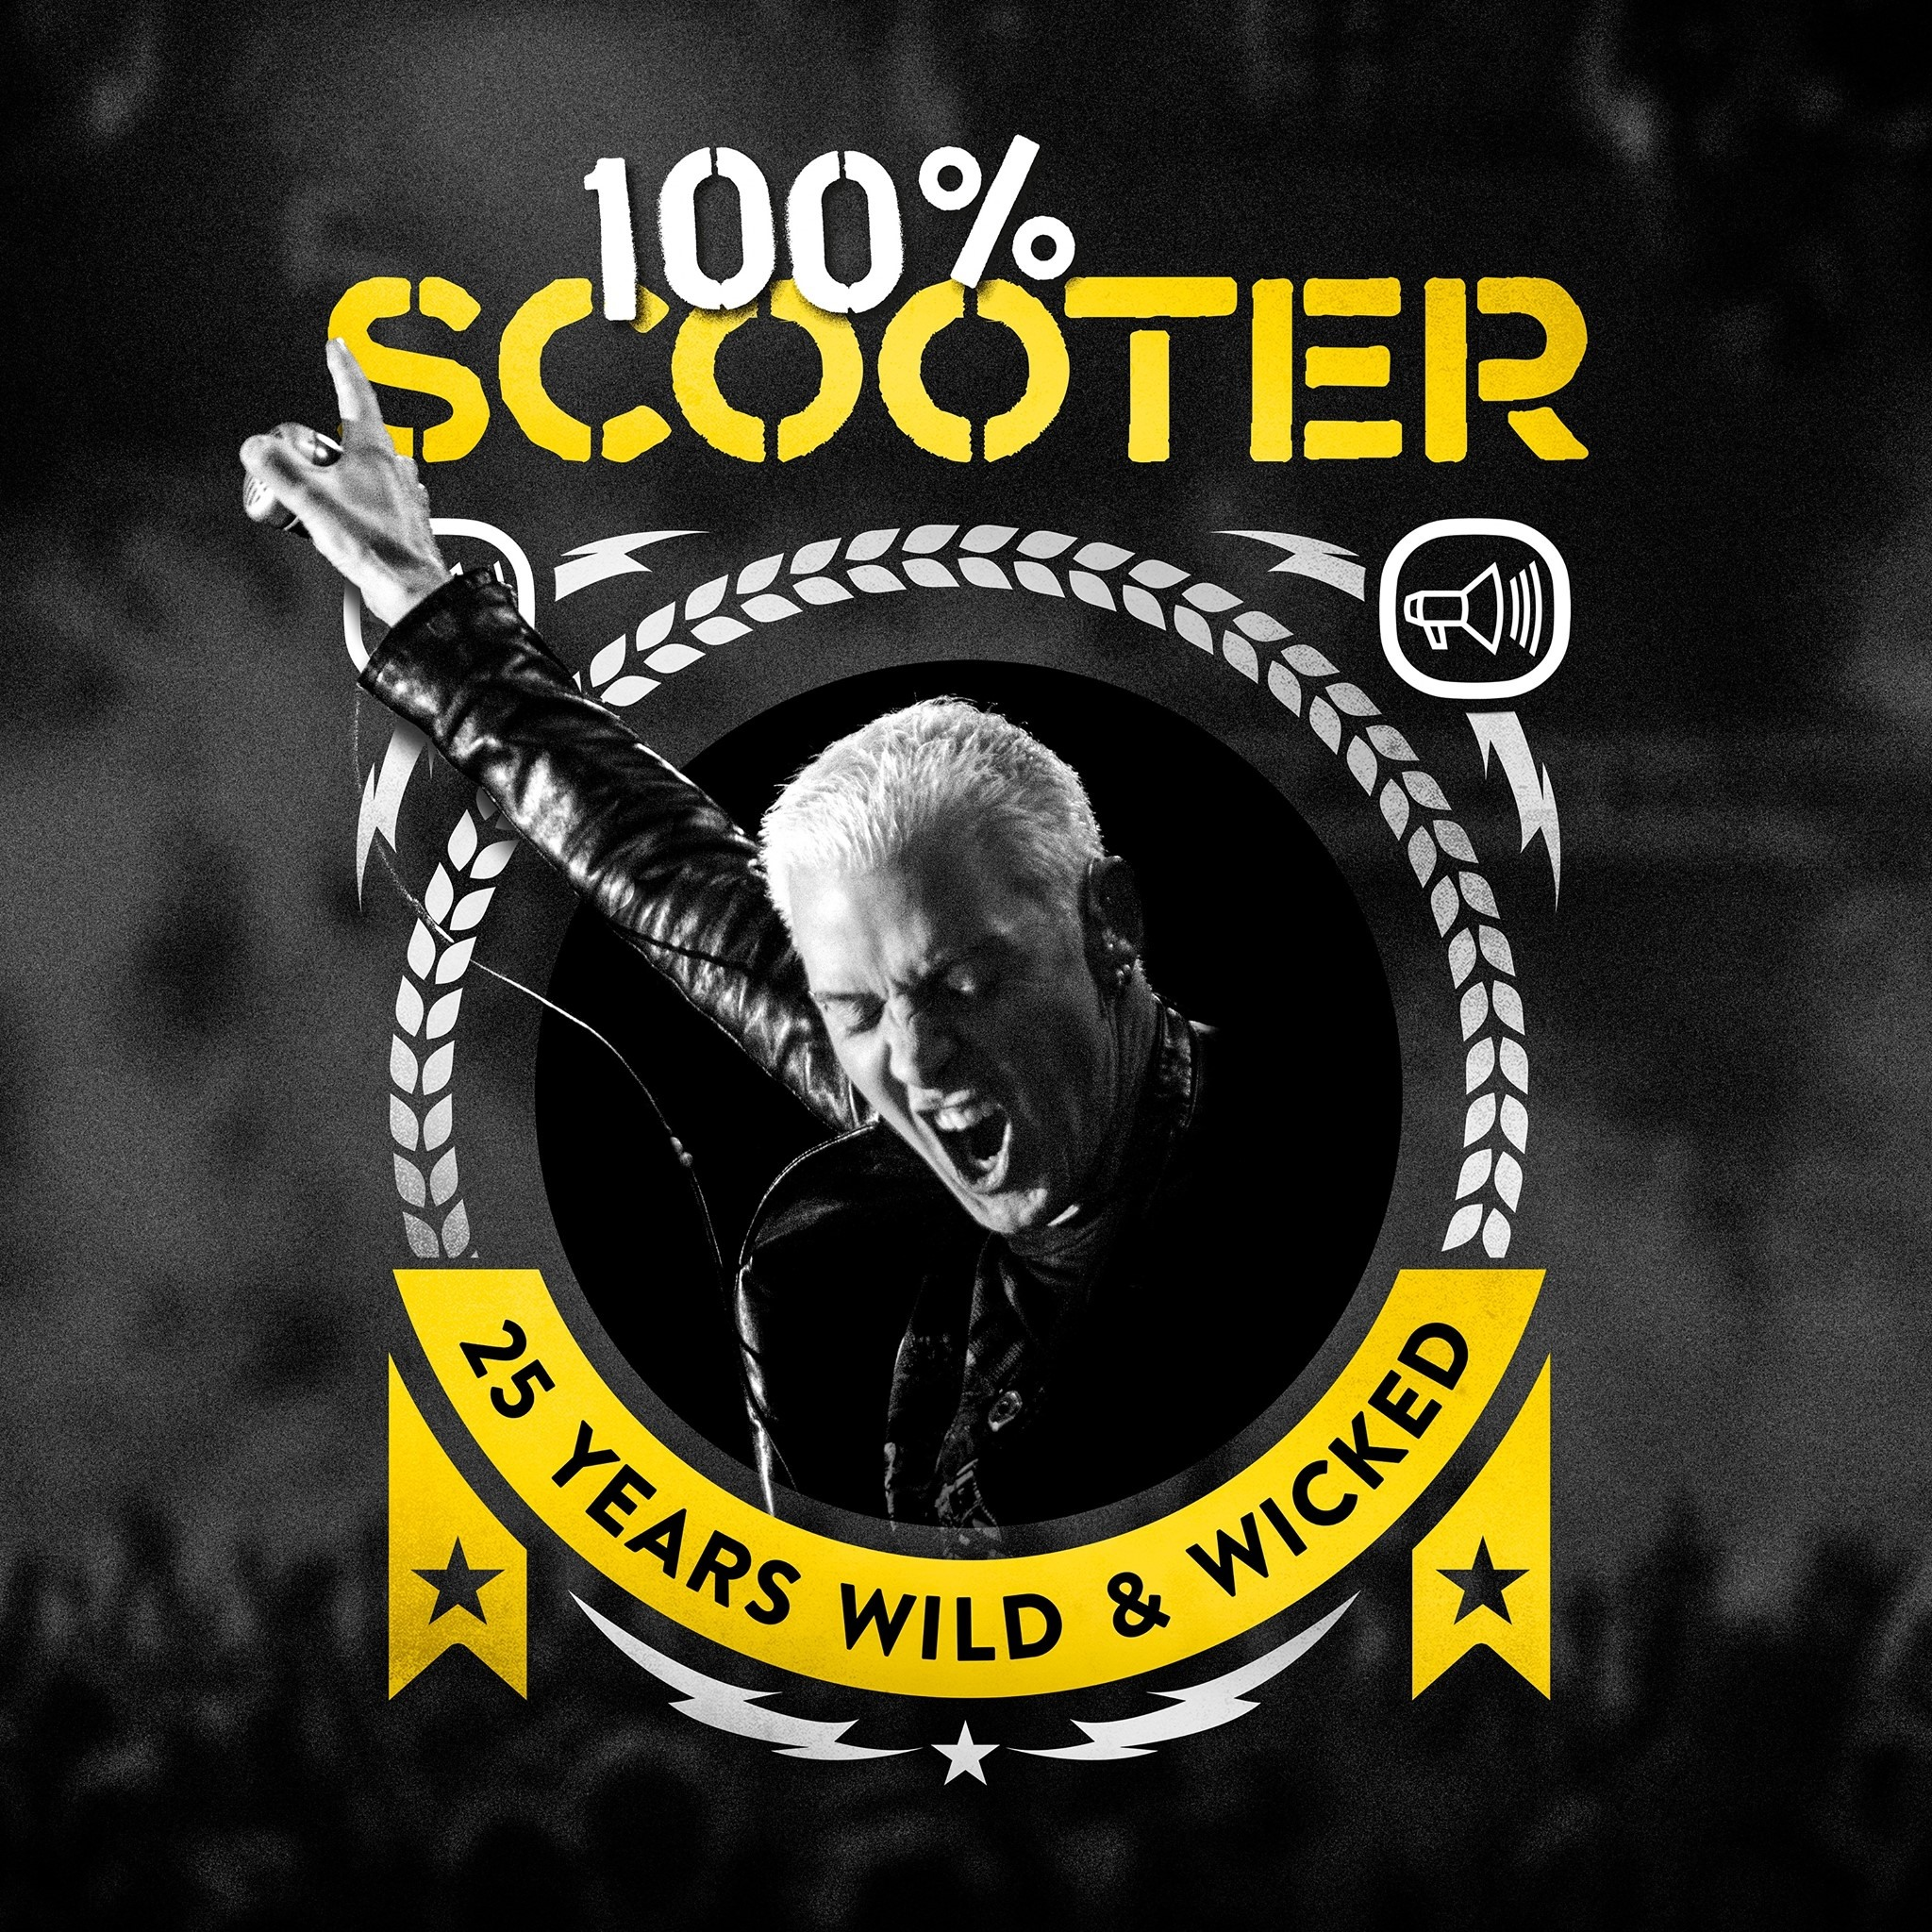 Cover photo on the 100% Scooter album